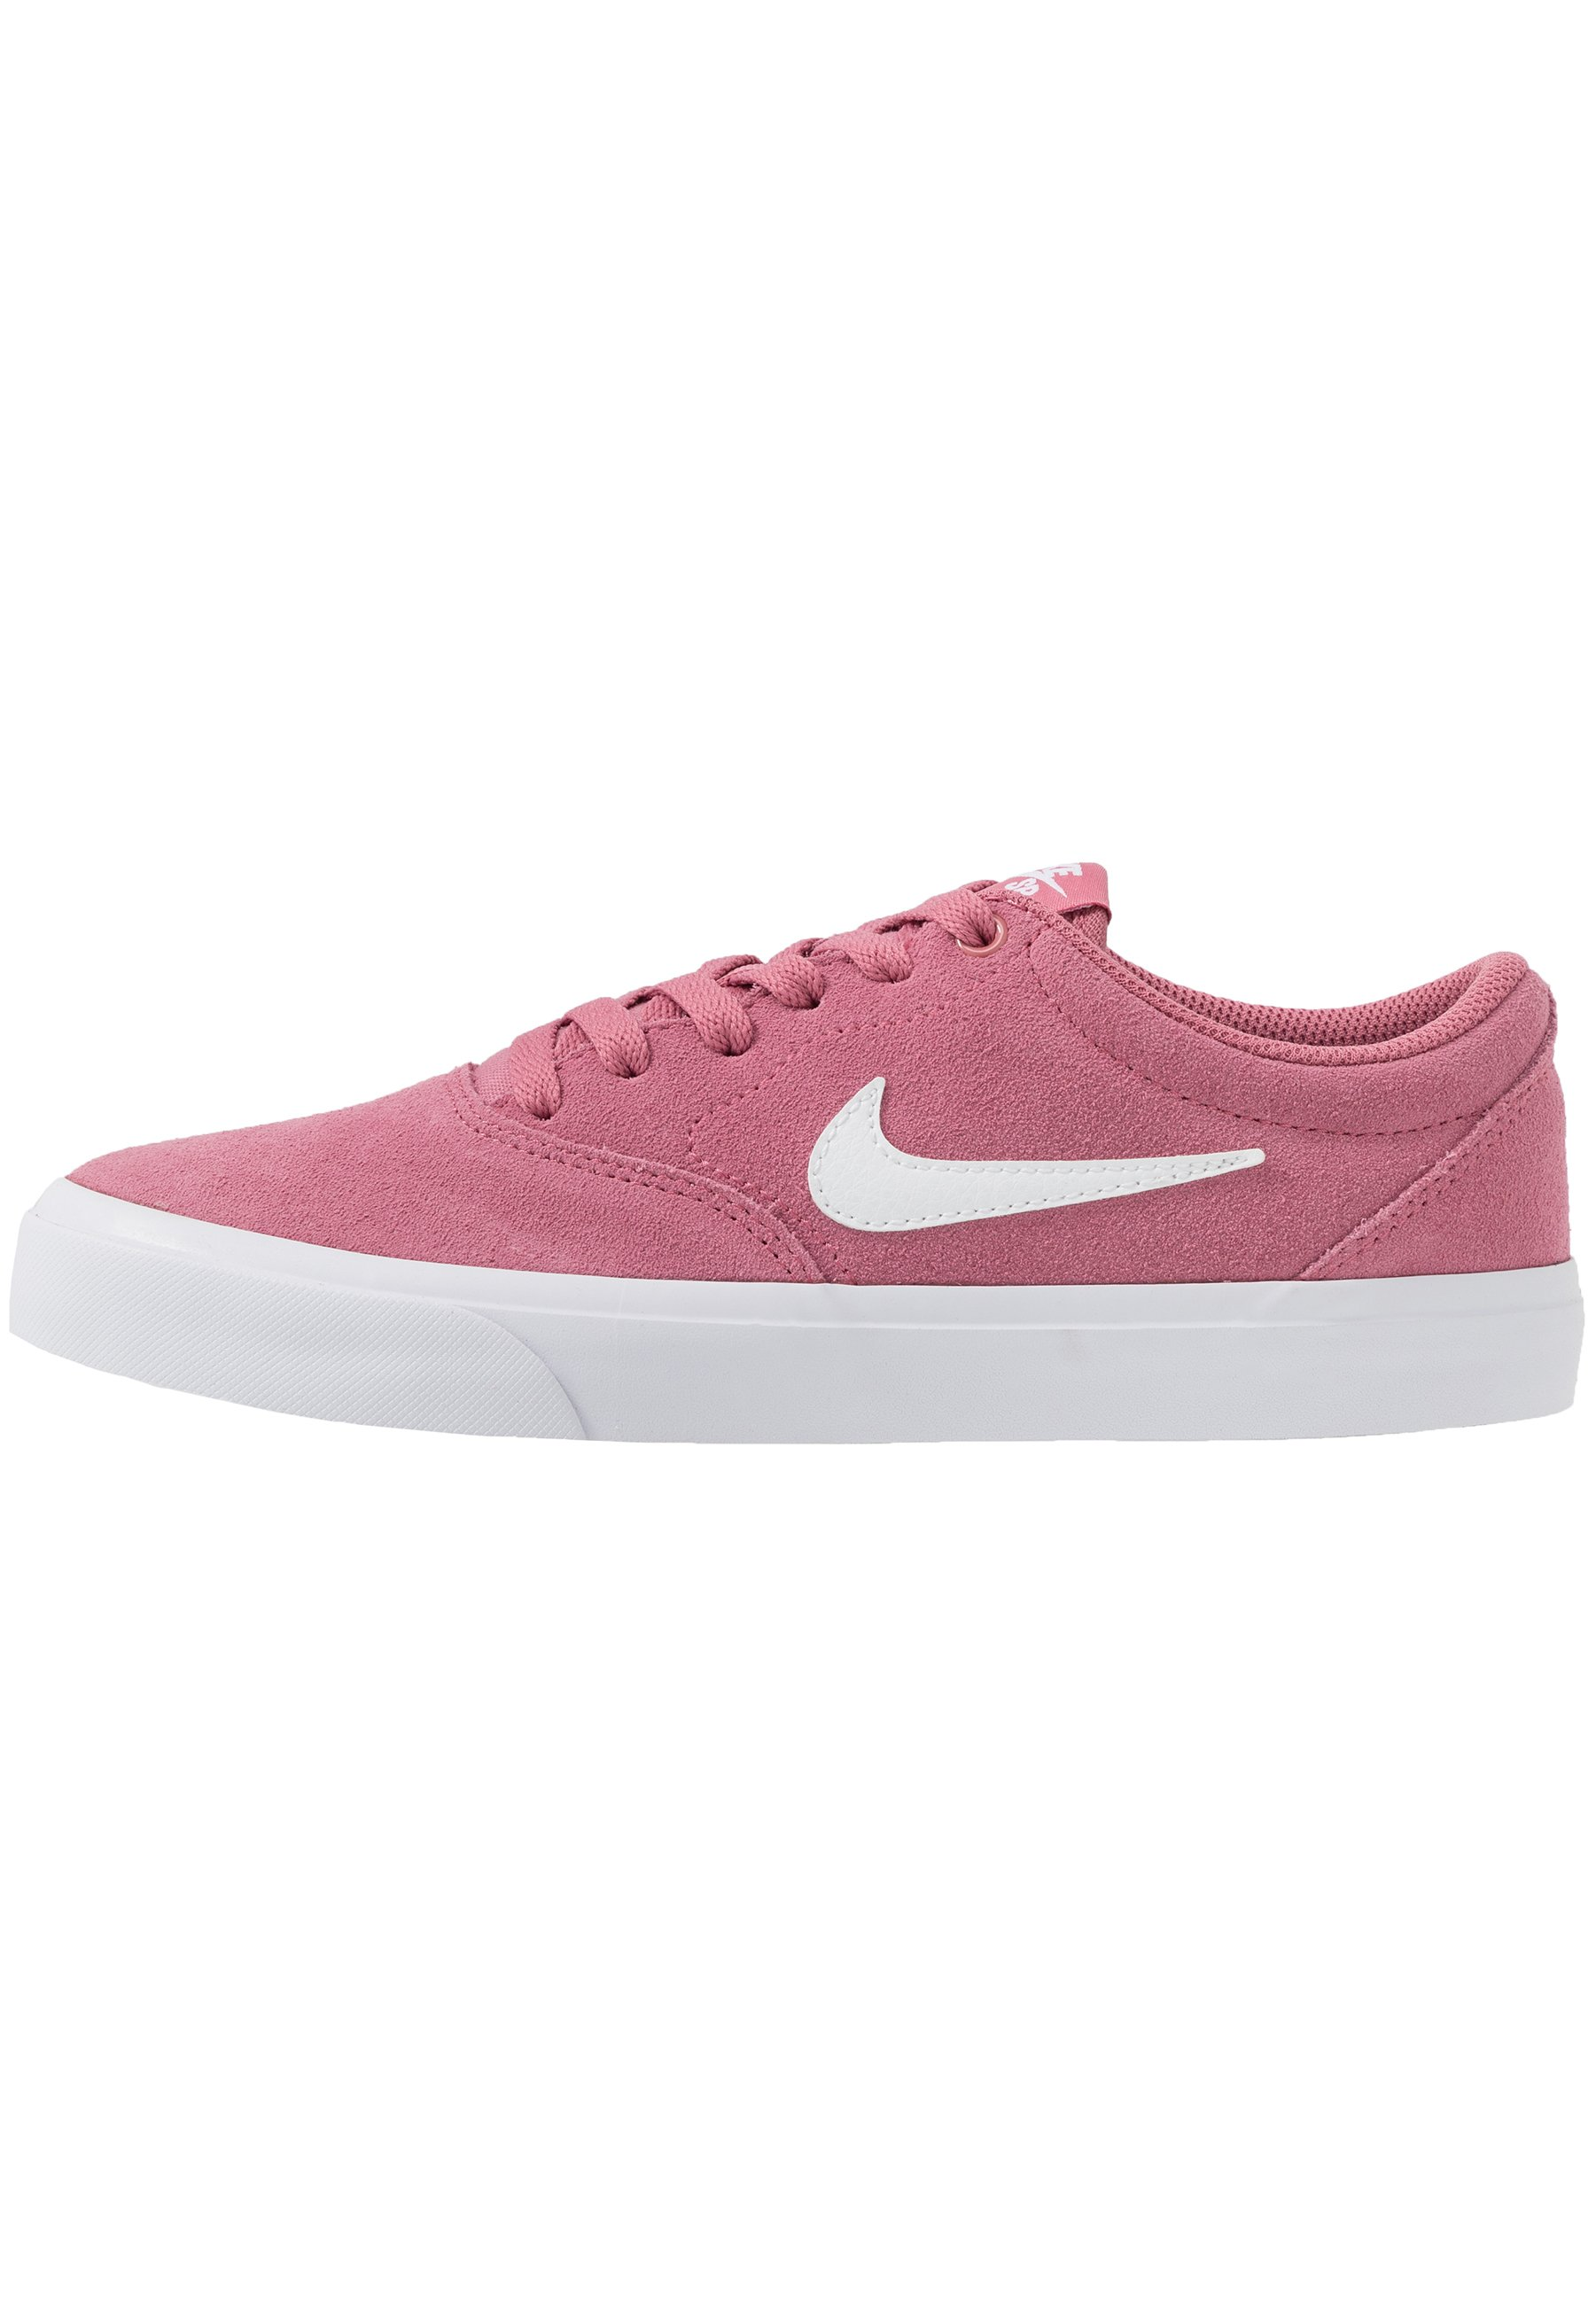 Nike Sb Charge - Sneaker Low Washed Coral/white/black/koralle